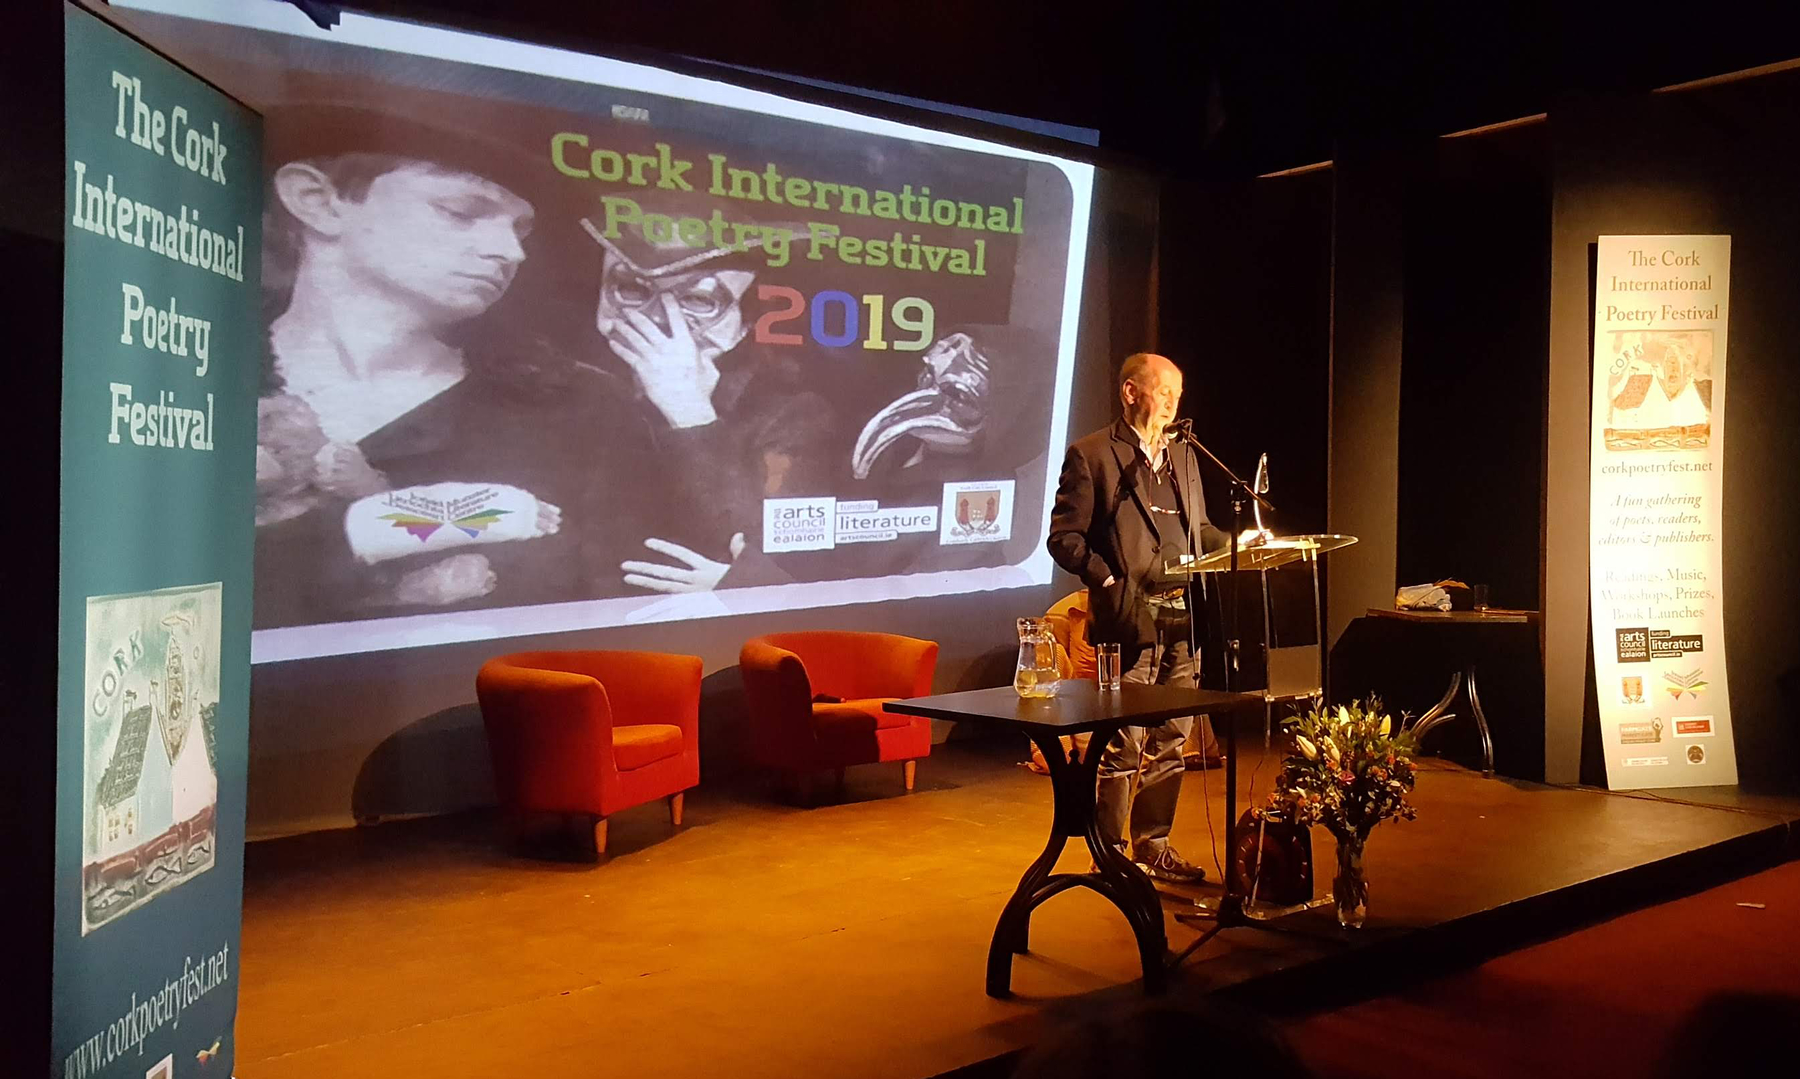 Billy Collins reading at Cork Poetry Festival